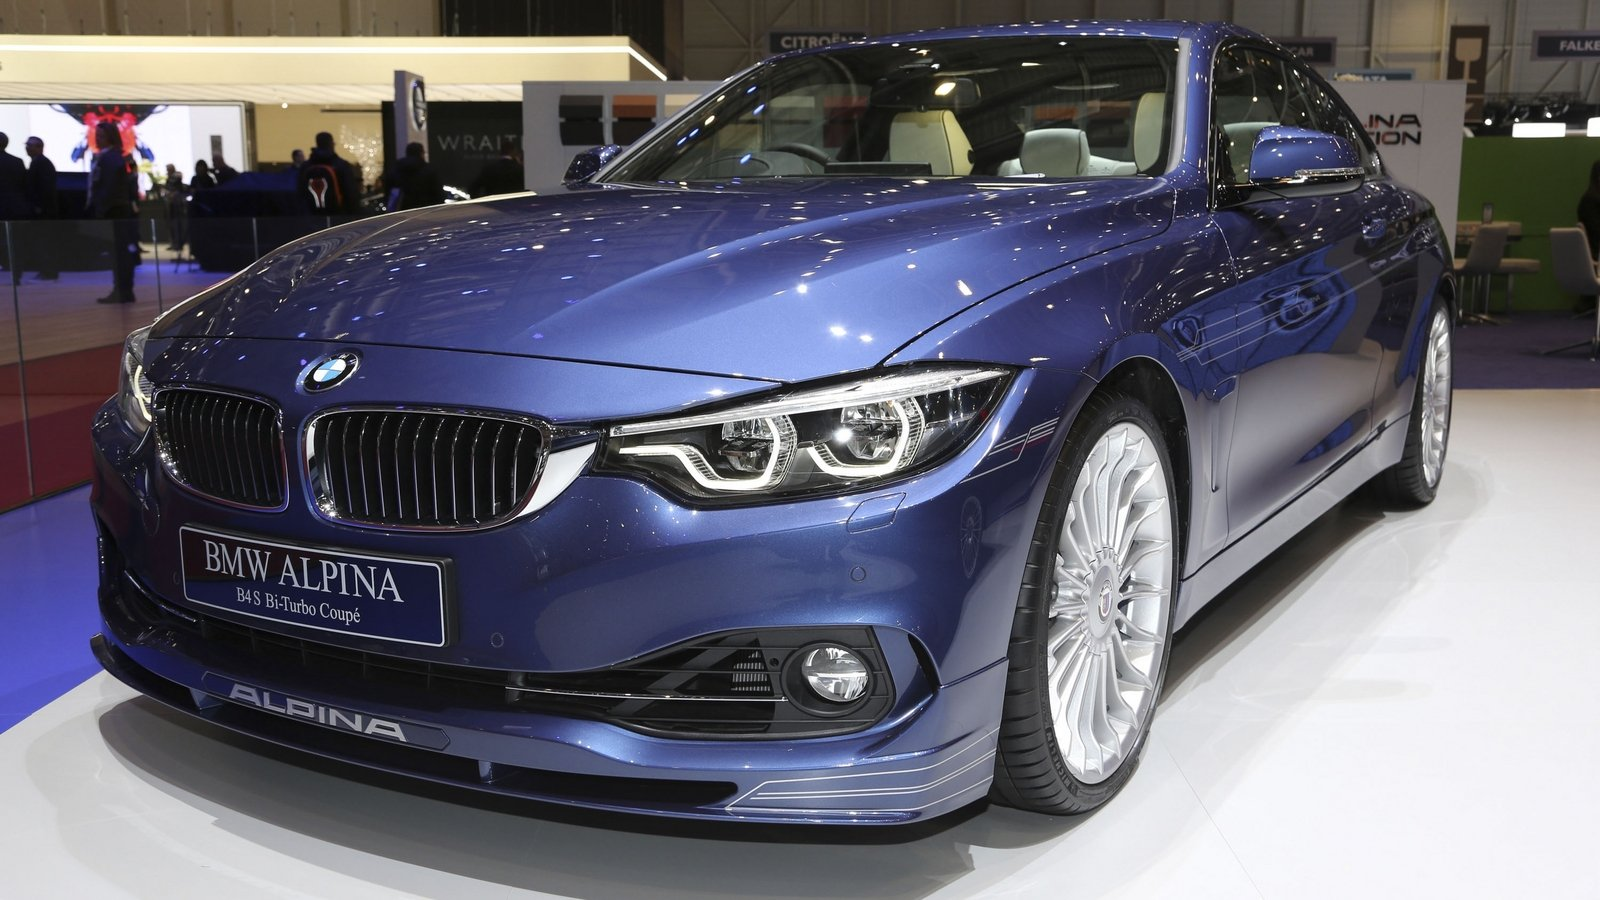 2017 Alpina B4 S Biturbo Top Speed